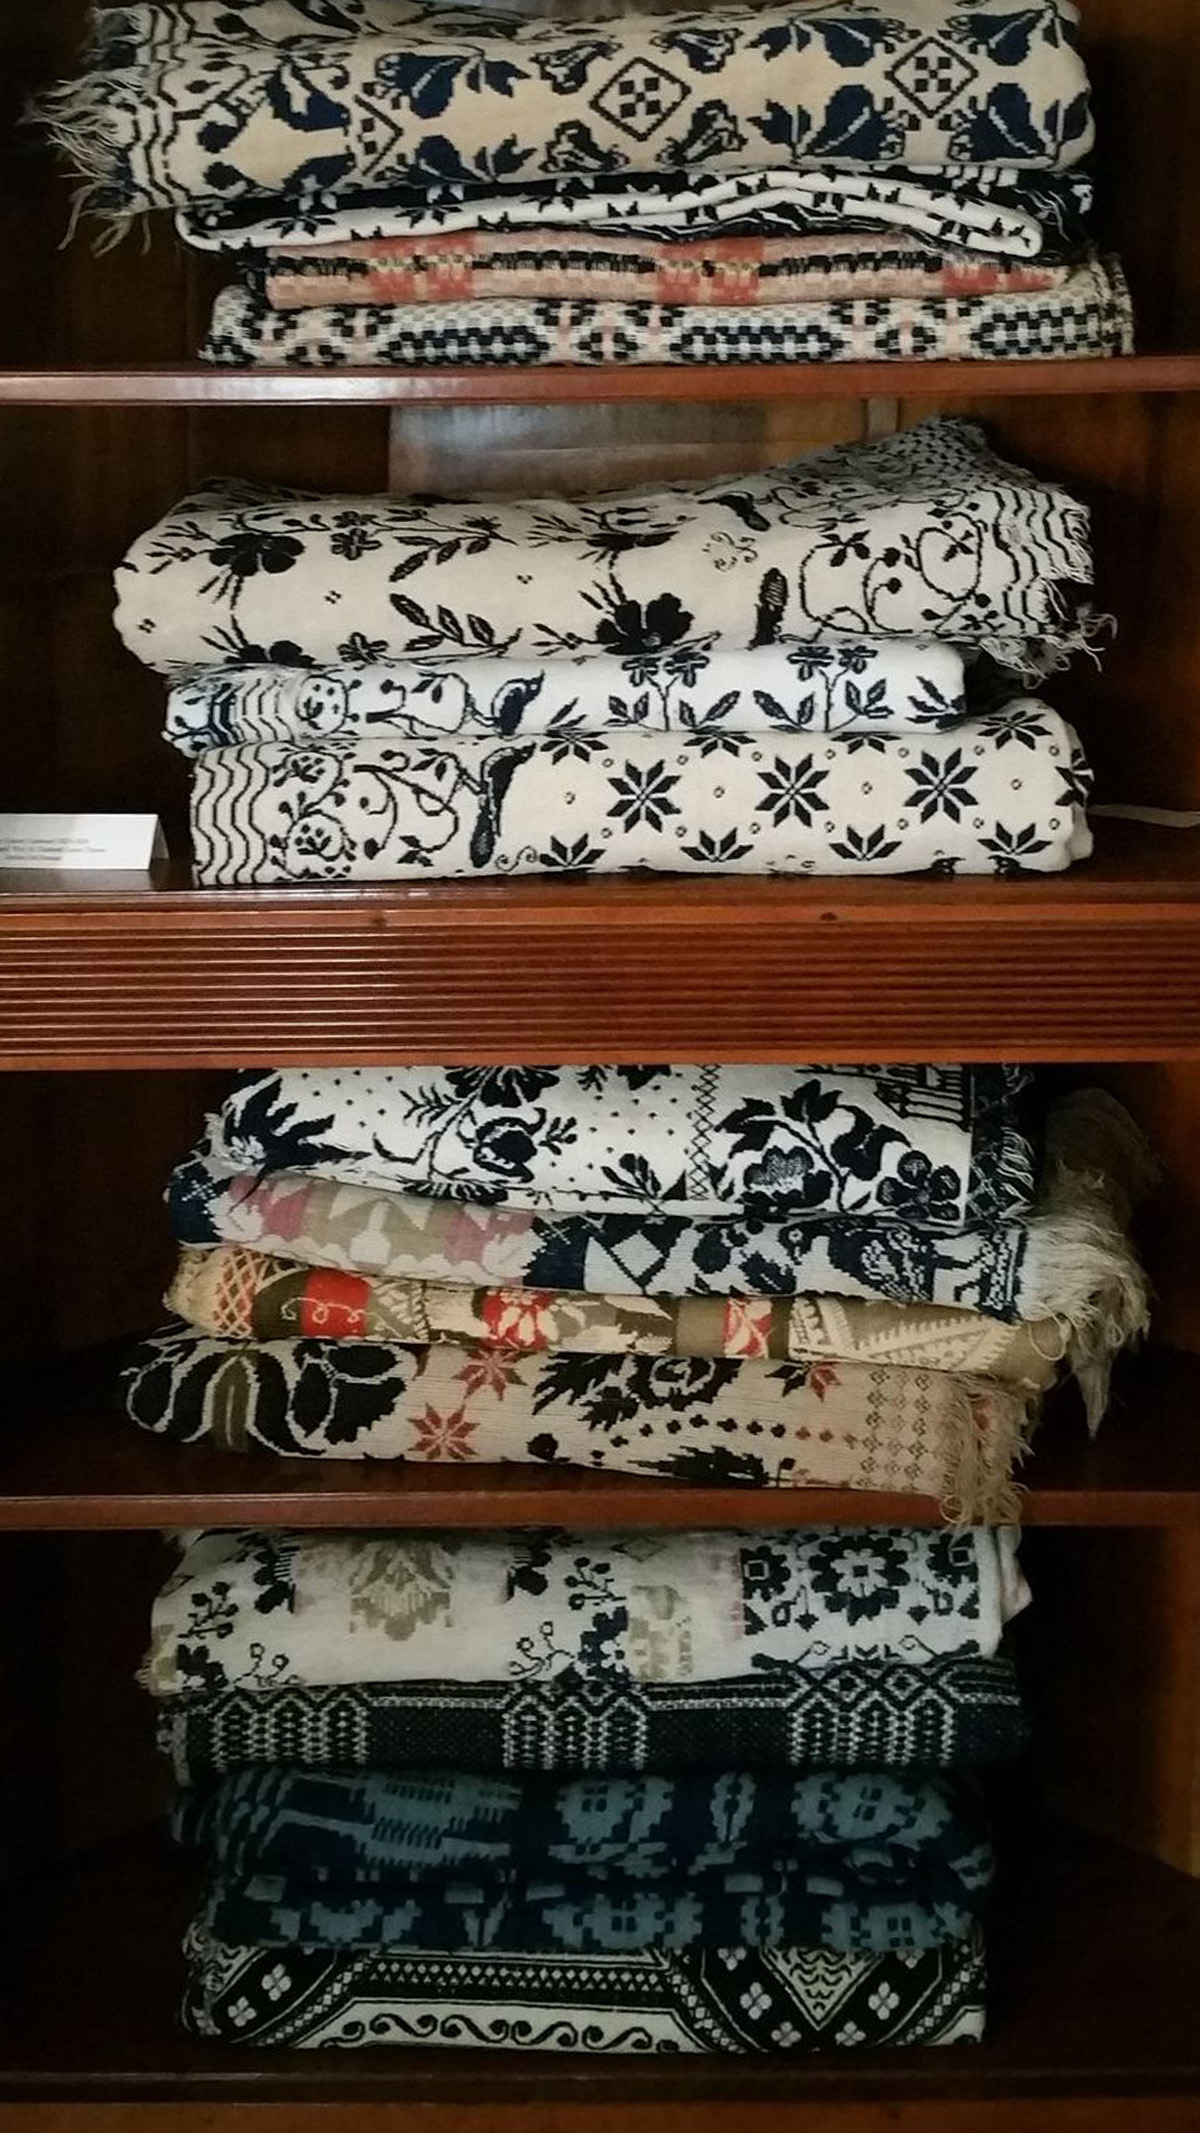 Antique textiles blankets at the Clinton County History Center